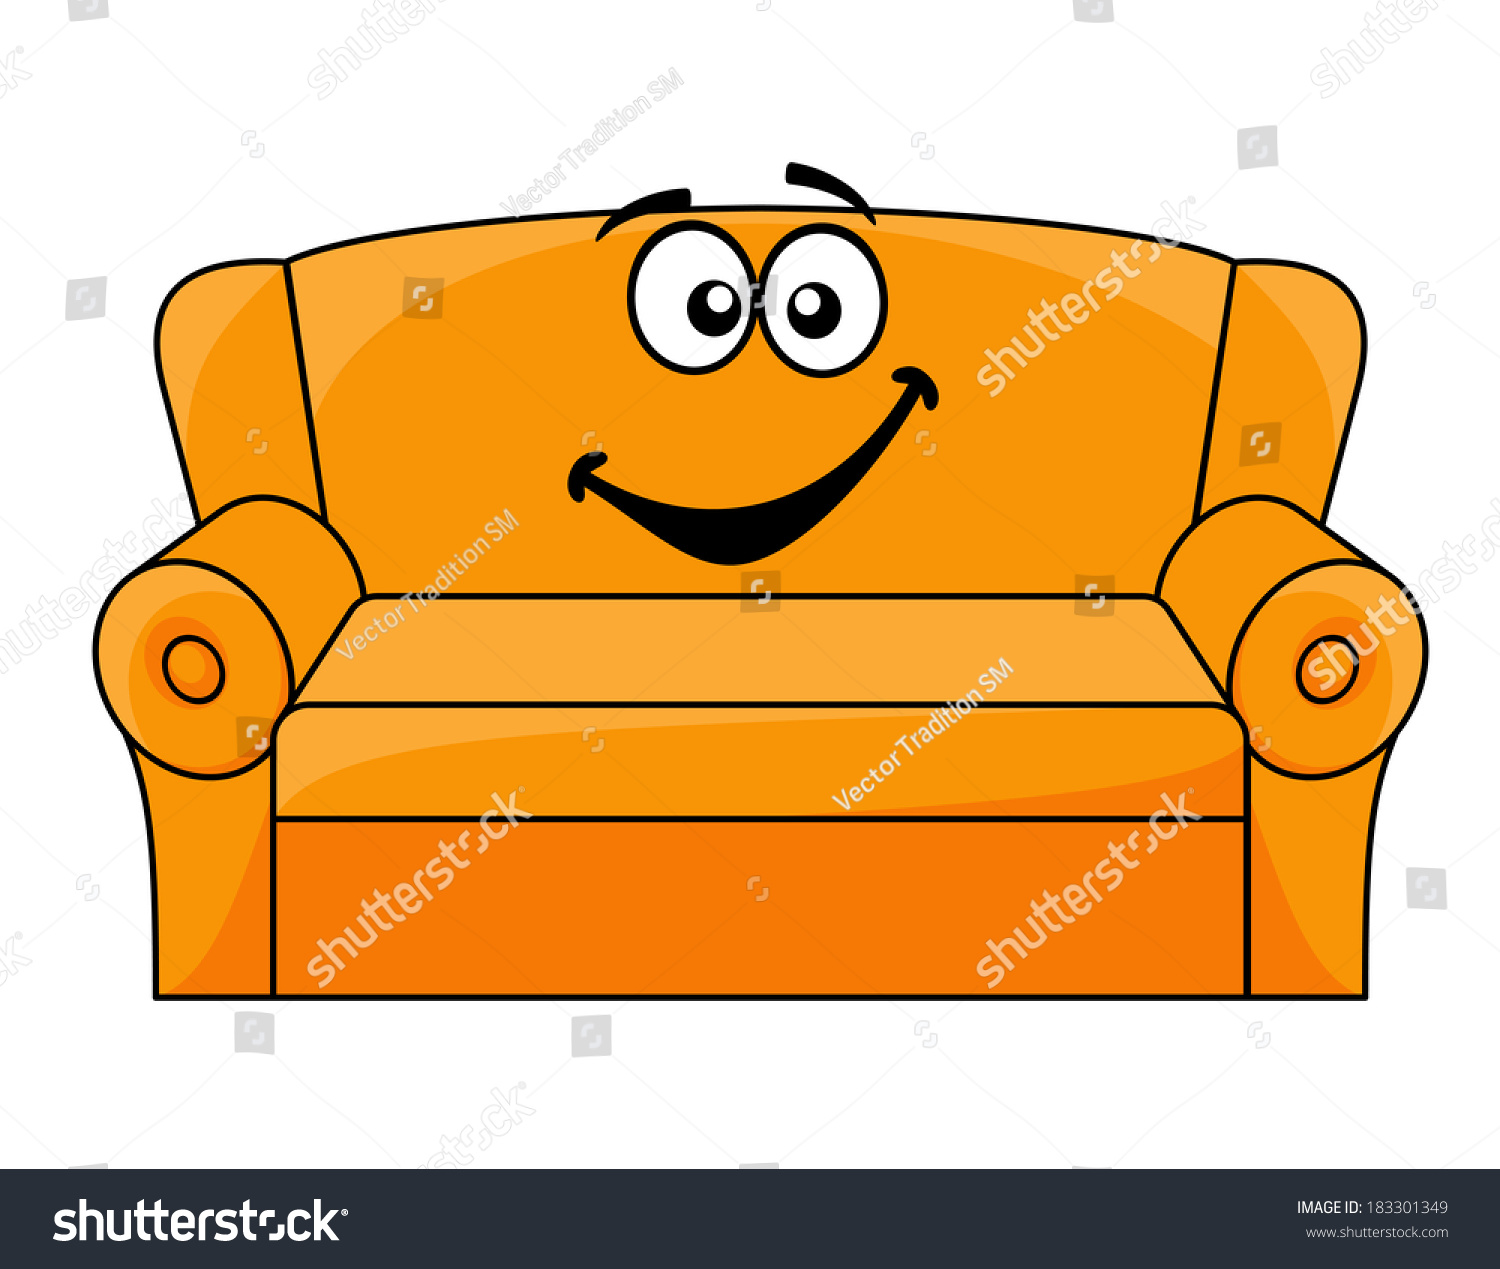 Cartoon Upholstered Orange Couch, Sofa Or Settee With A